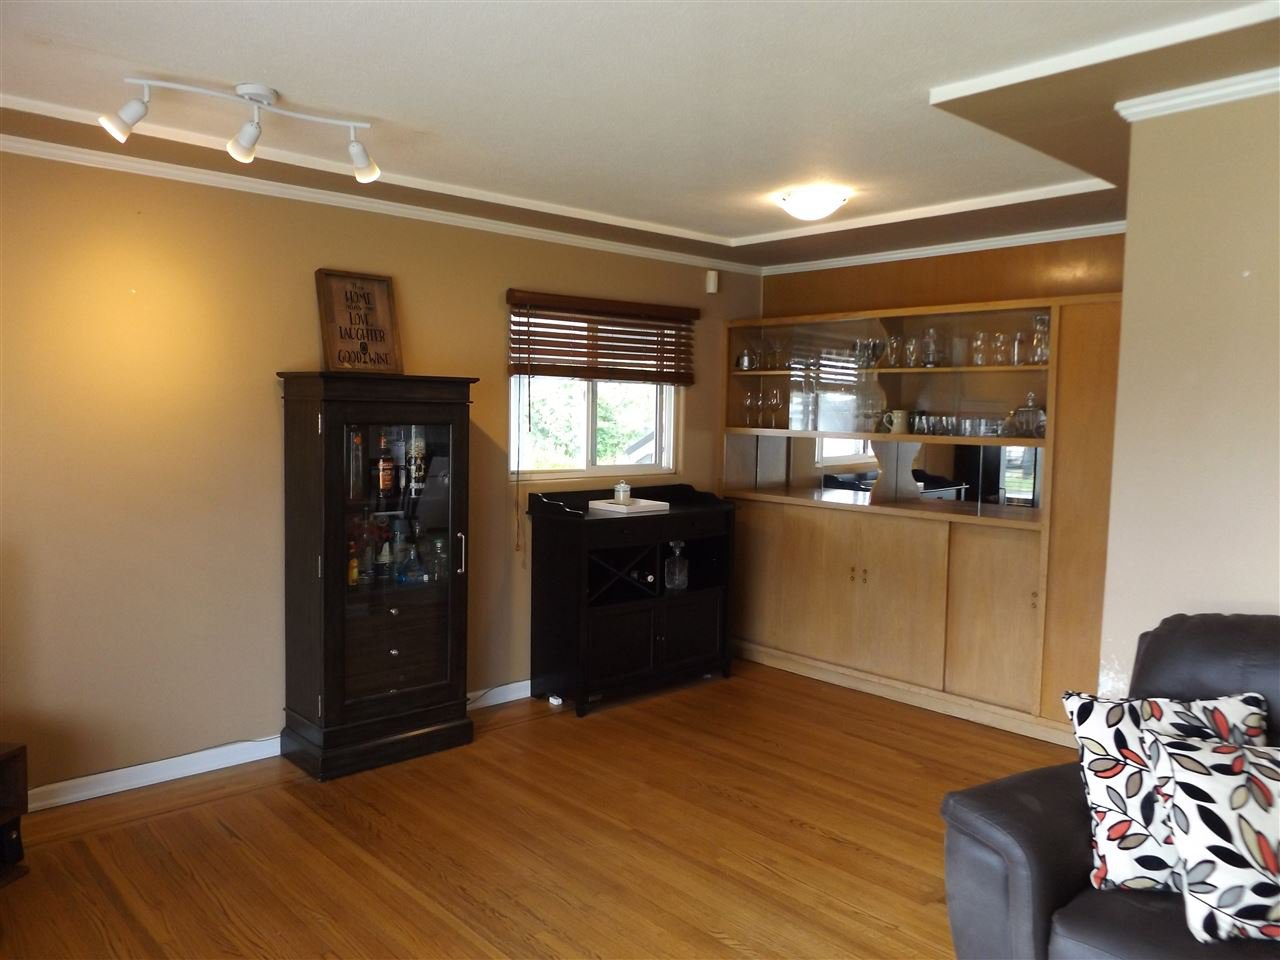 Photo 11: Photos: 46615 FRASER Avenue in Chilliwack: Chilliwack E Young-Yale House for sale : MLS®# R2178819